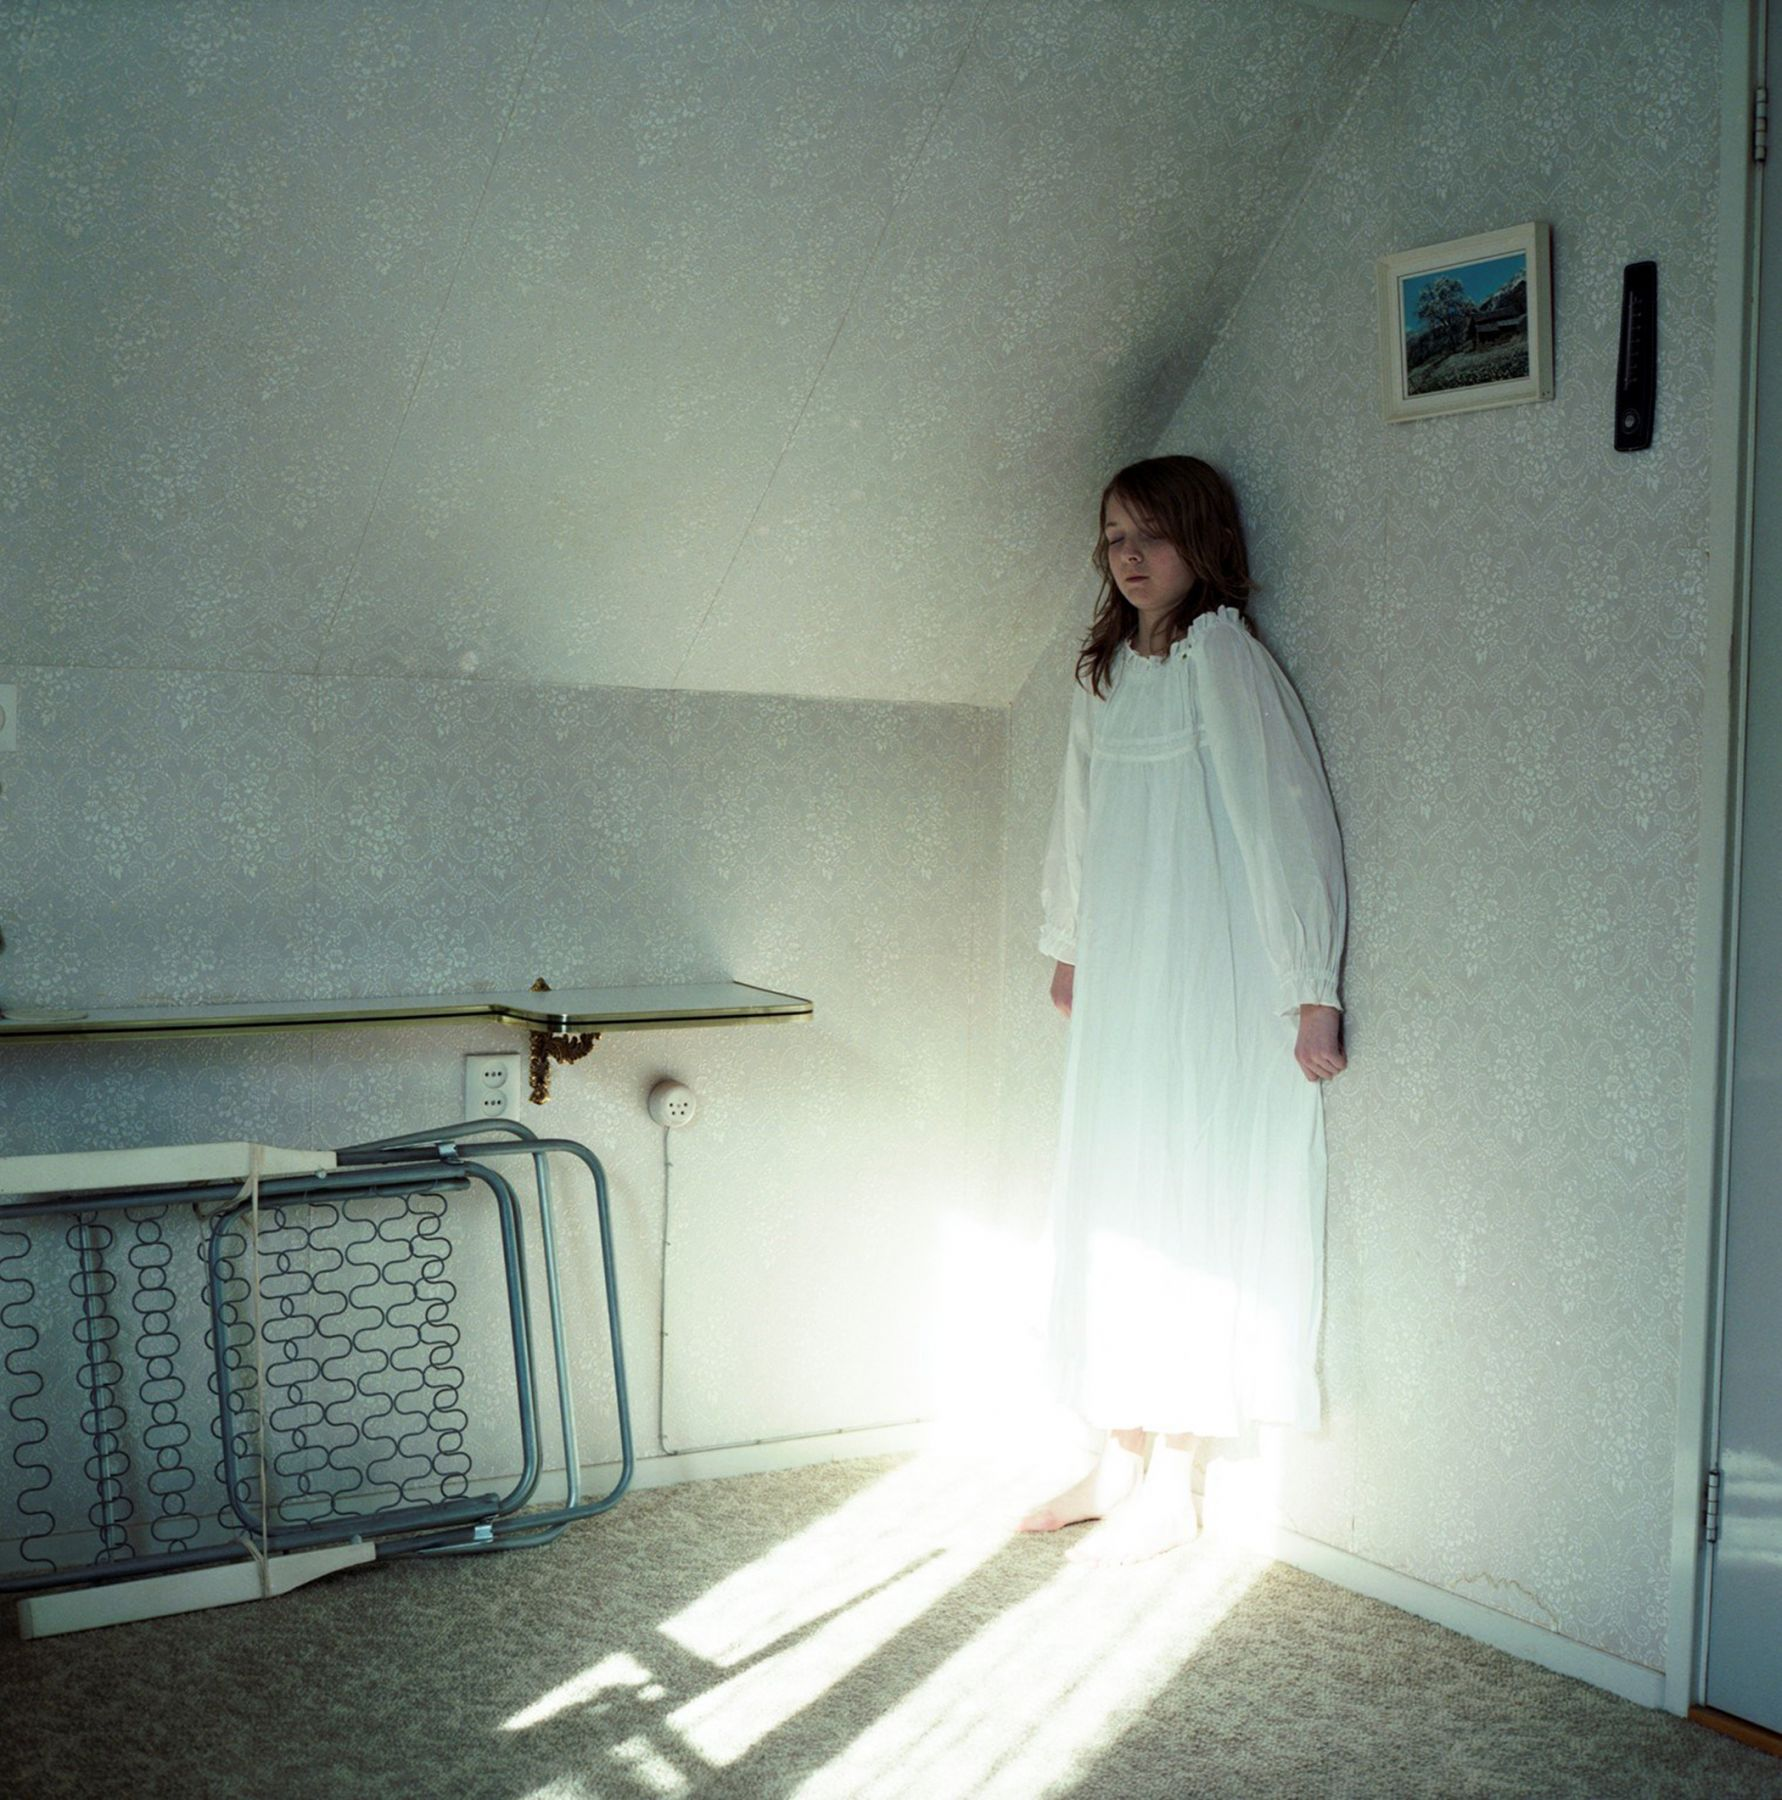 Untitled #308 (from Pool of Tears), 2008, 16 x 16 inch Chromogenic Print, Edition of 10